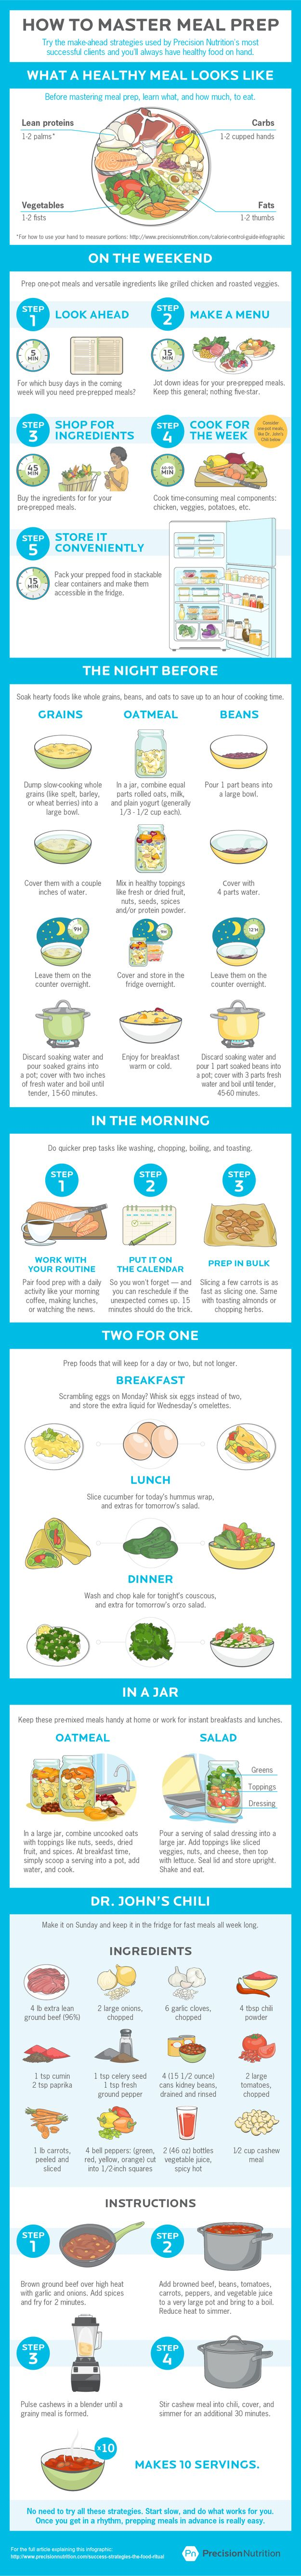 The most important part of meal prepping is knowing exactly how to plan ahead. Here's everything you need to know, in a single infographic.